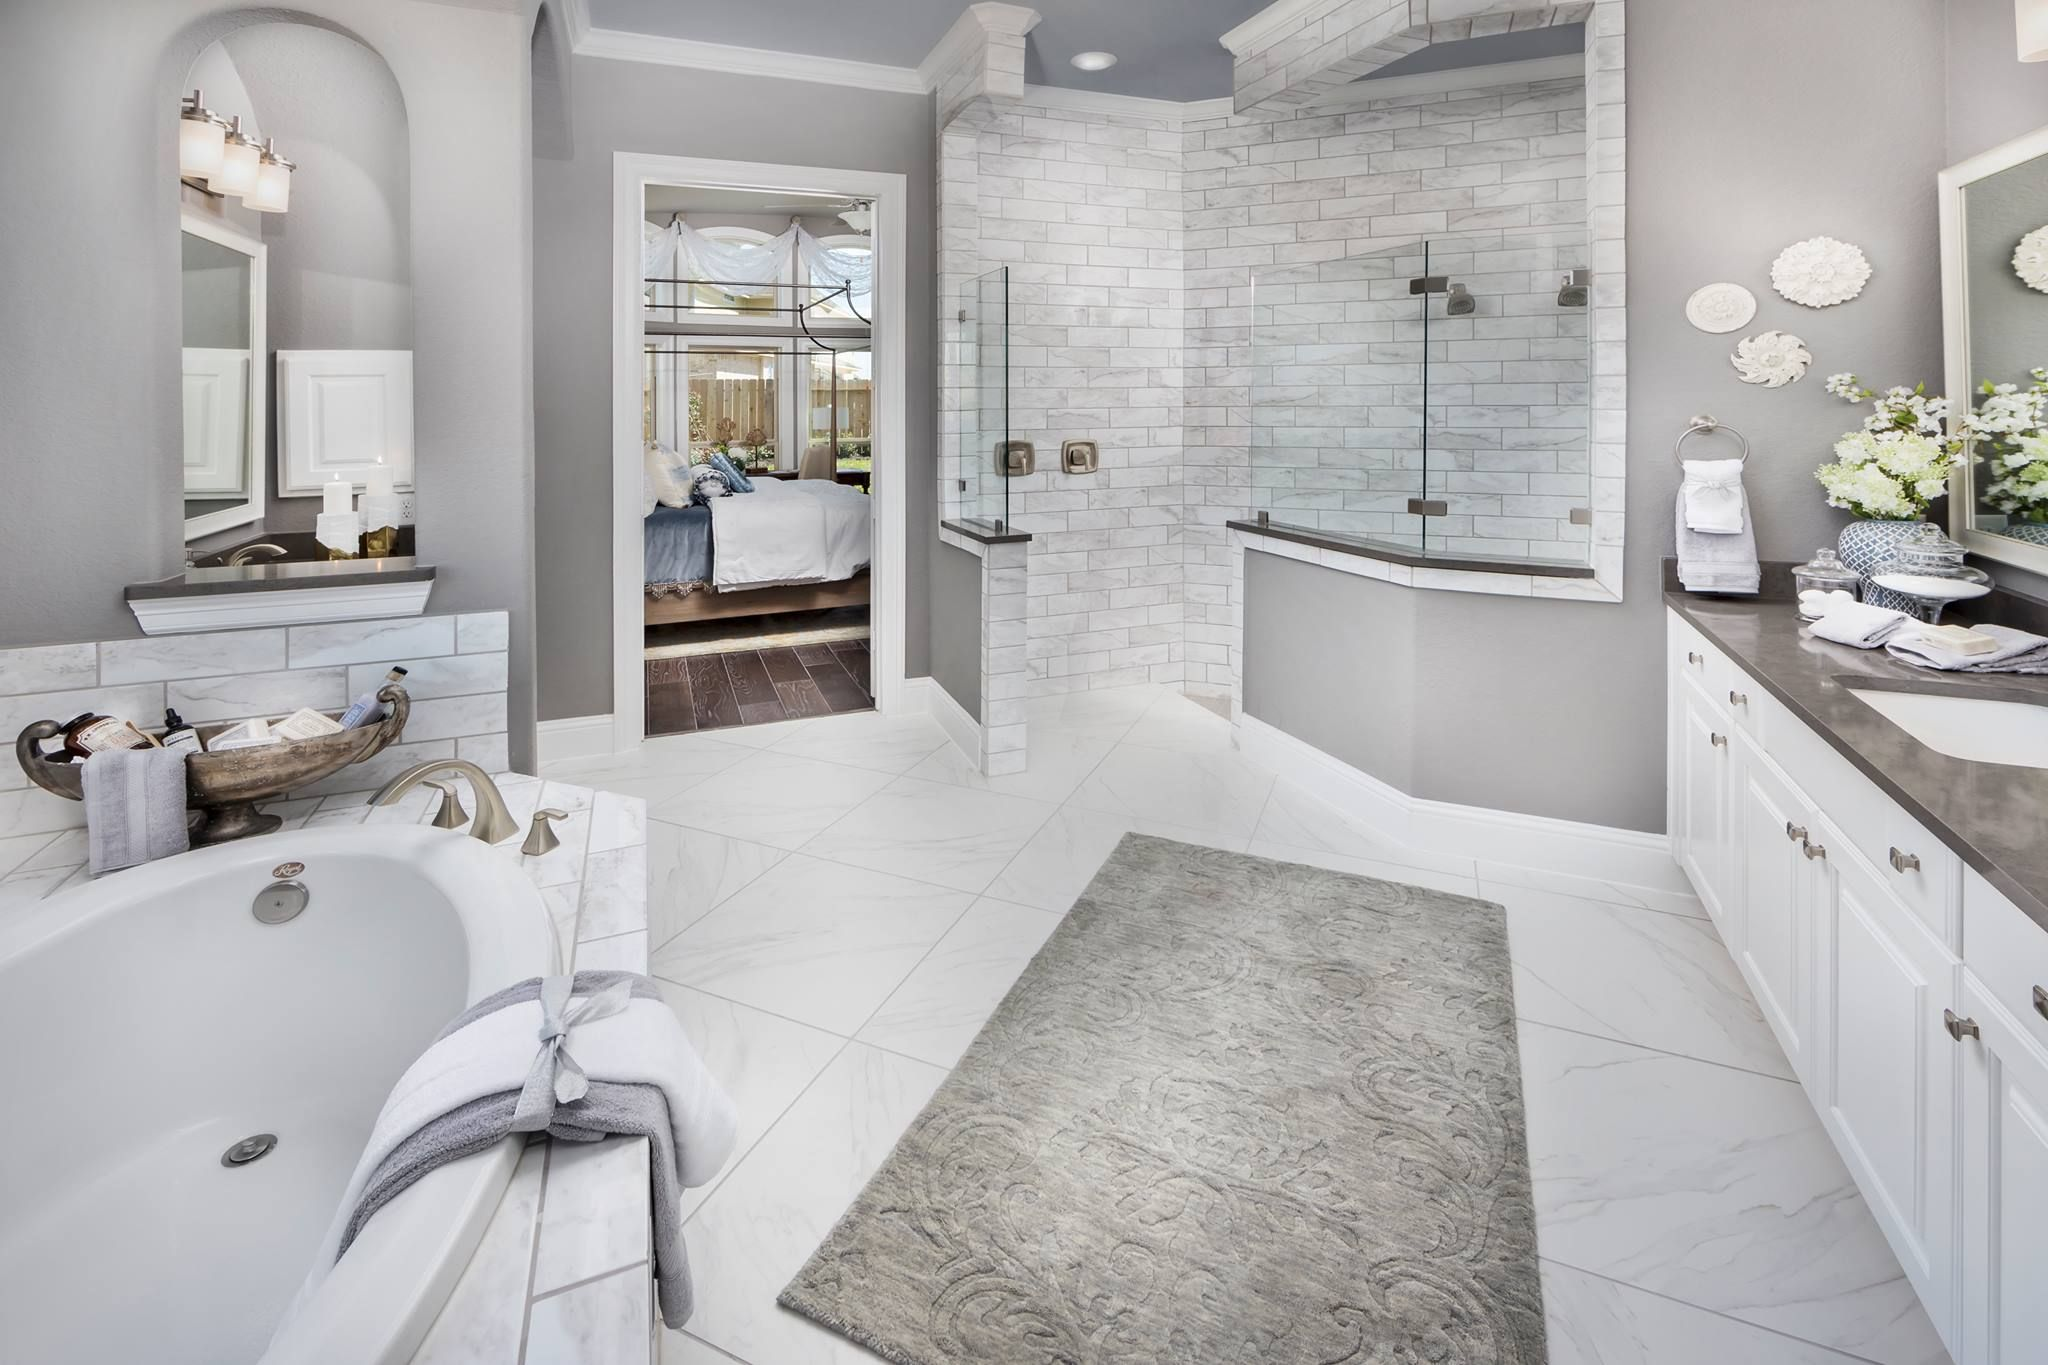 Use One Word To Describe This Luxurious Bathroom New Homes New Home Construction Dream Bathrooms